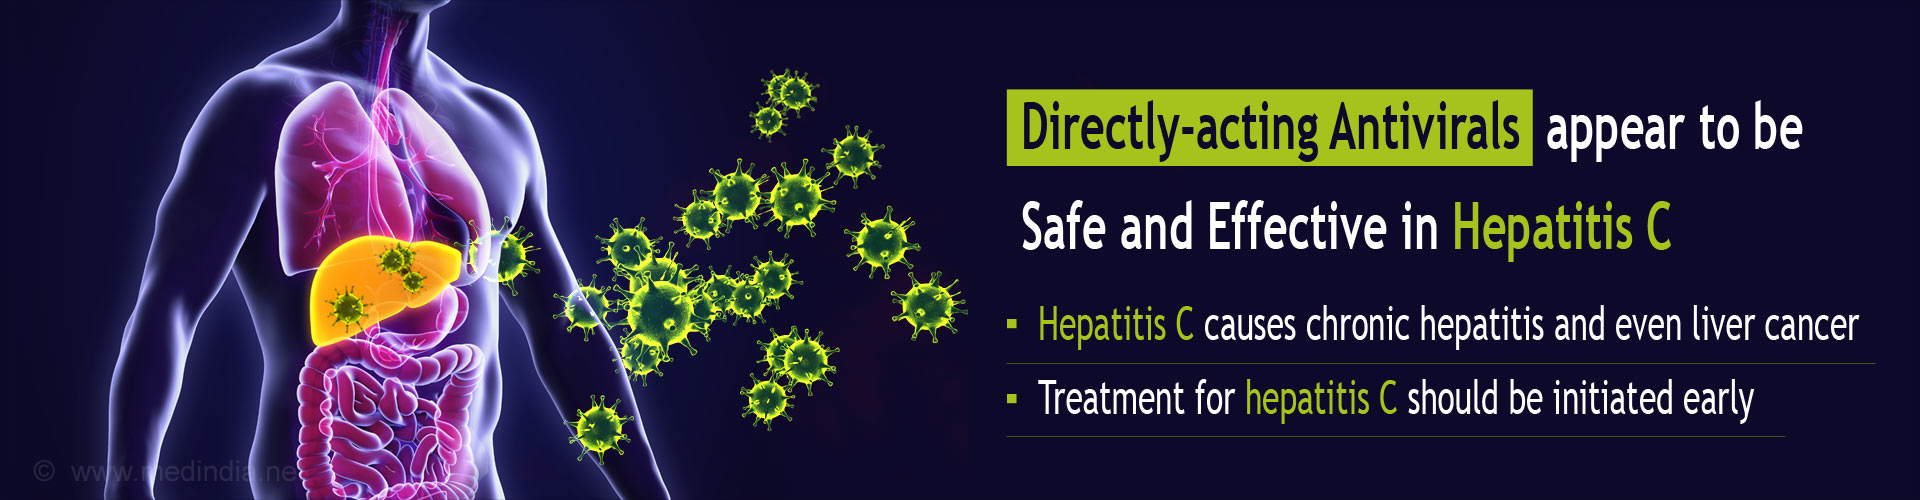 Directly-acting Antivirals Appear Safe and Effective in Treating Hepatitis C